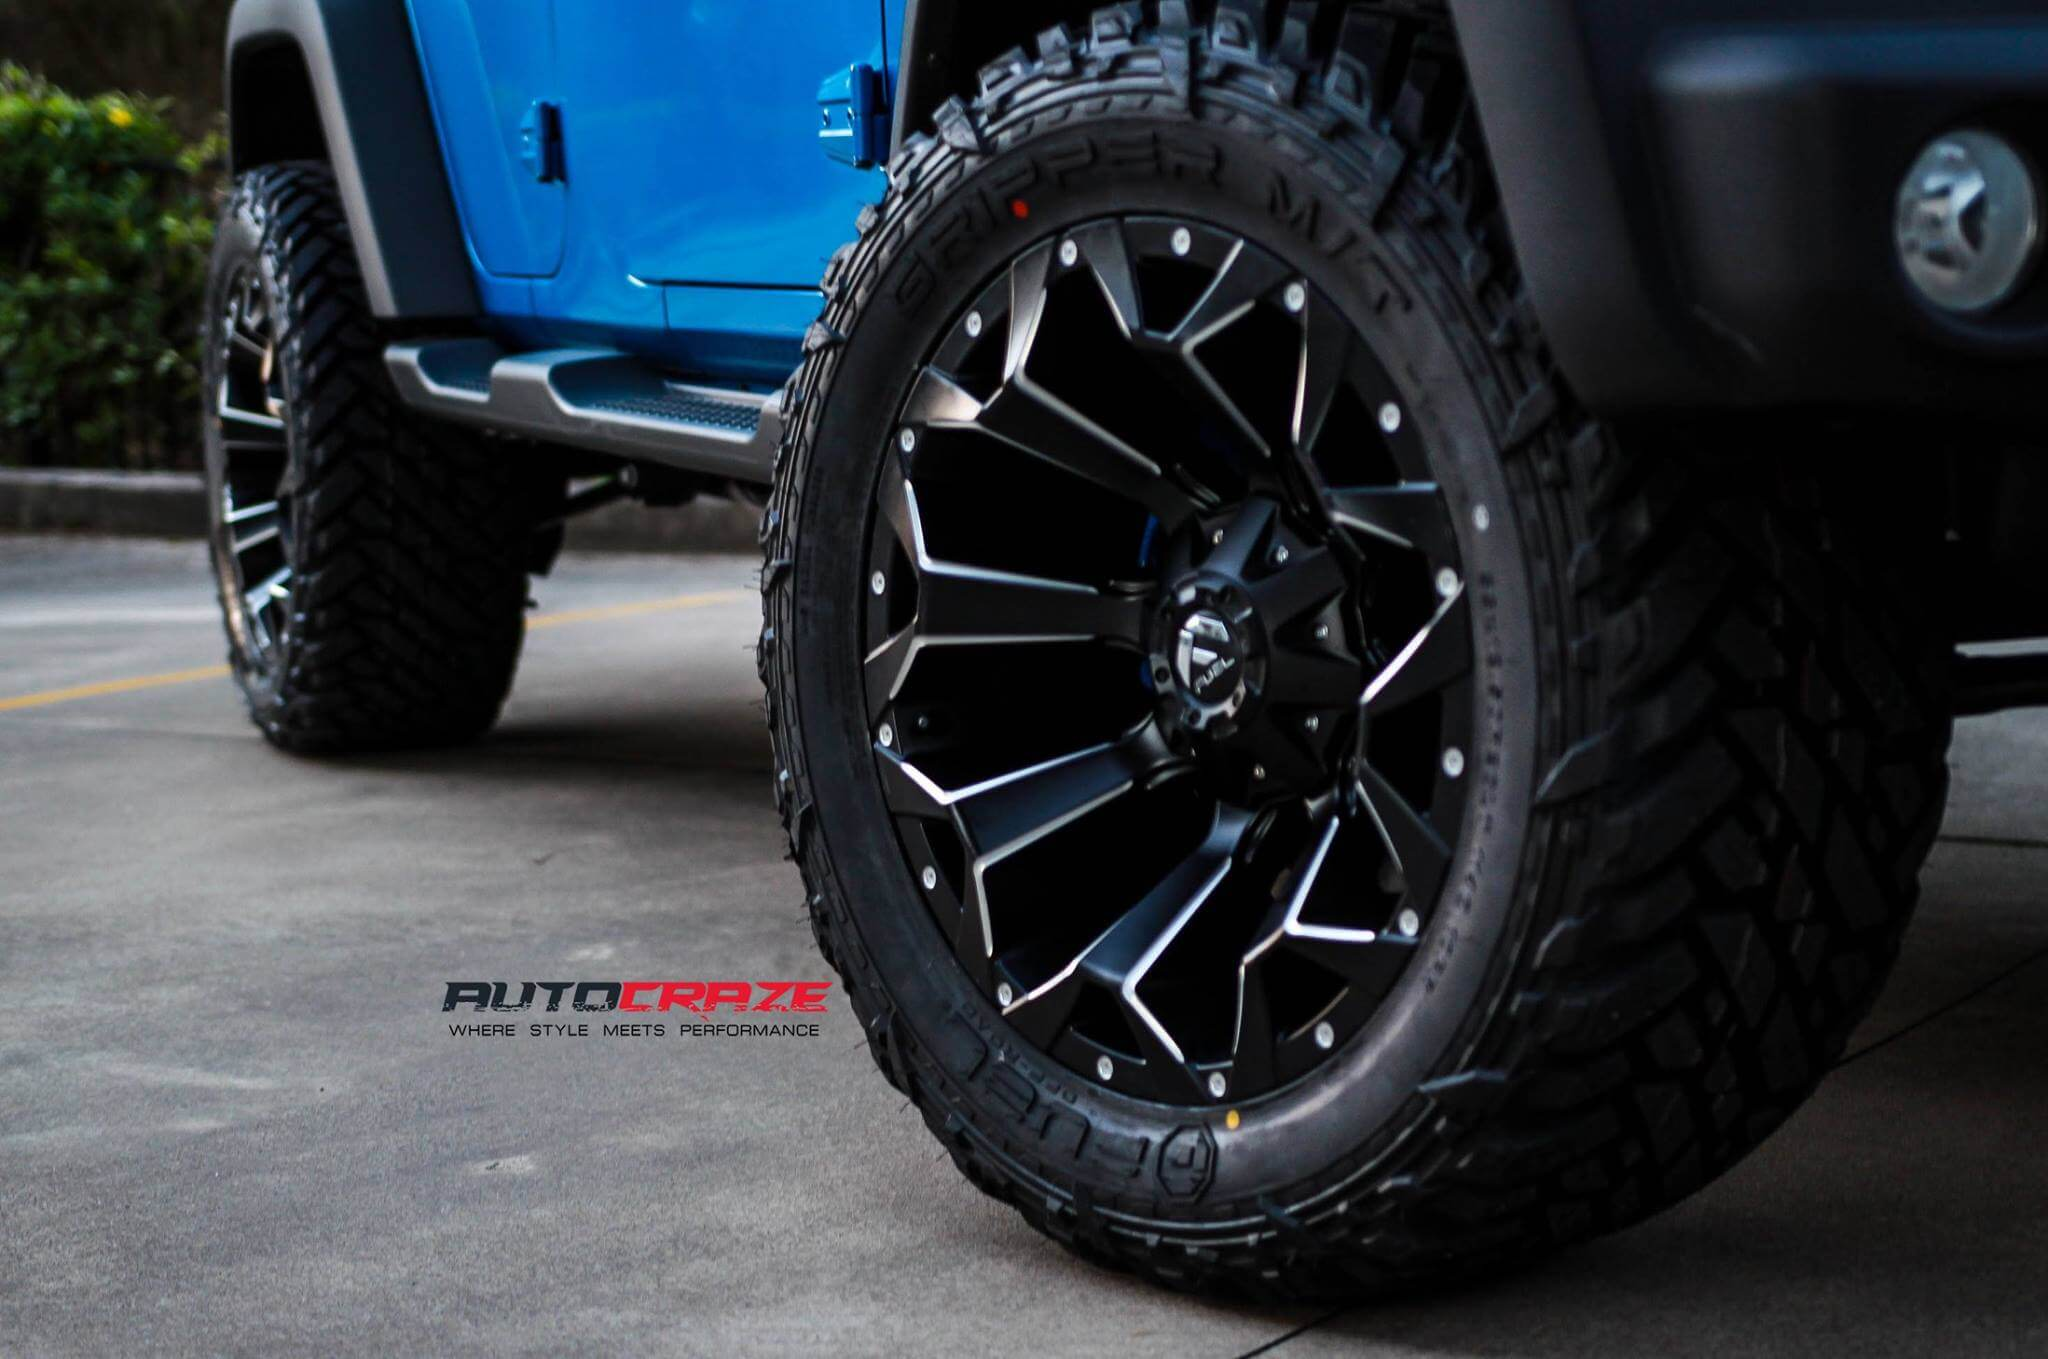 Jeep Jk Wheels >> Jeep Alloy Wheels | 4WD Jeep Mag Rims And Tyres Australia | Autocraze 1800 099 634